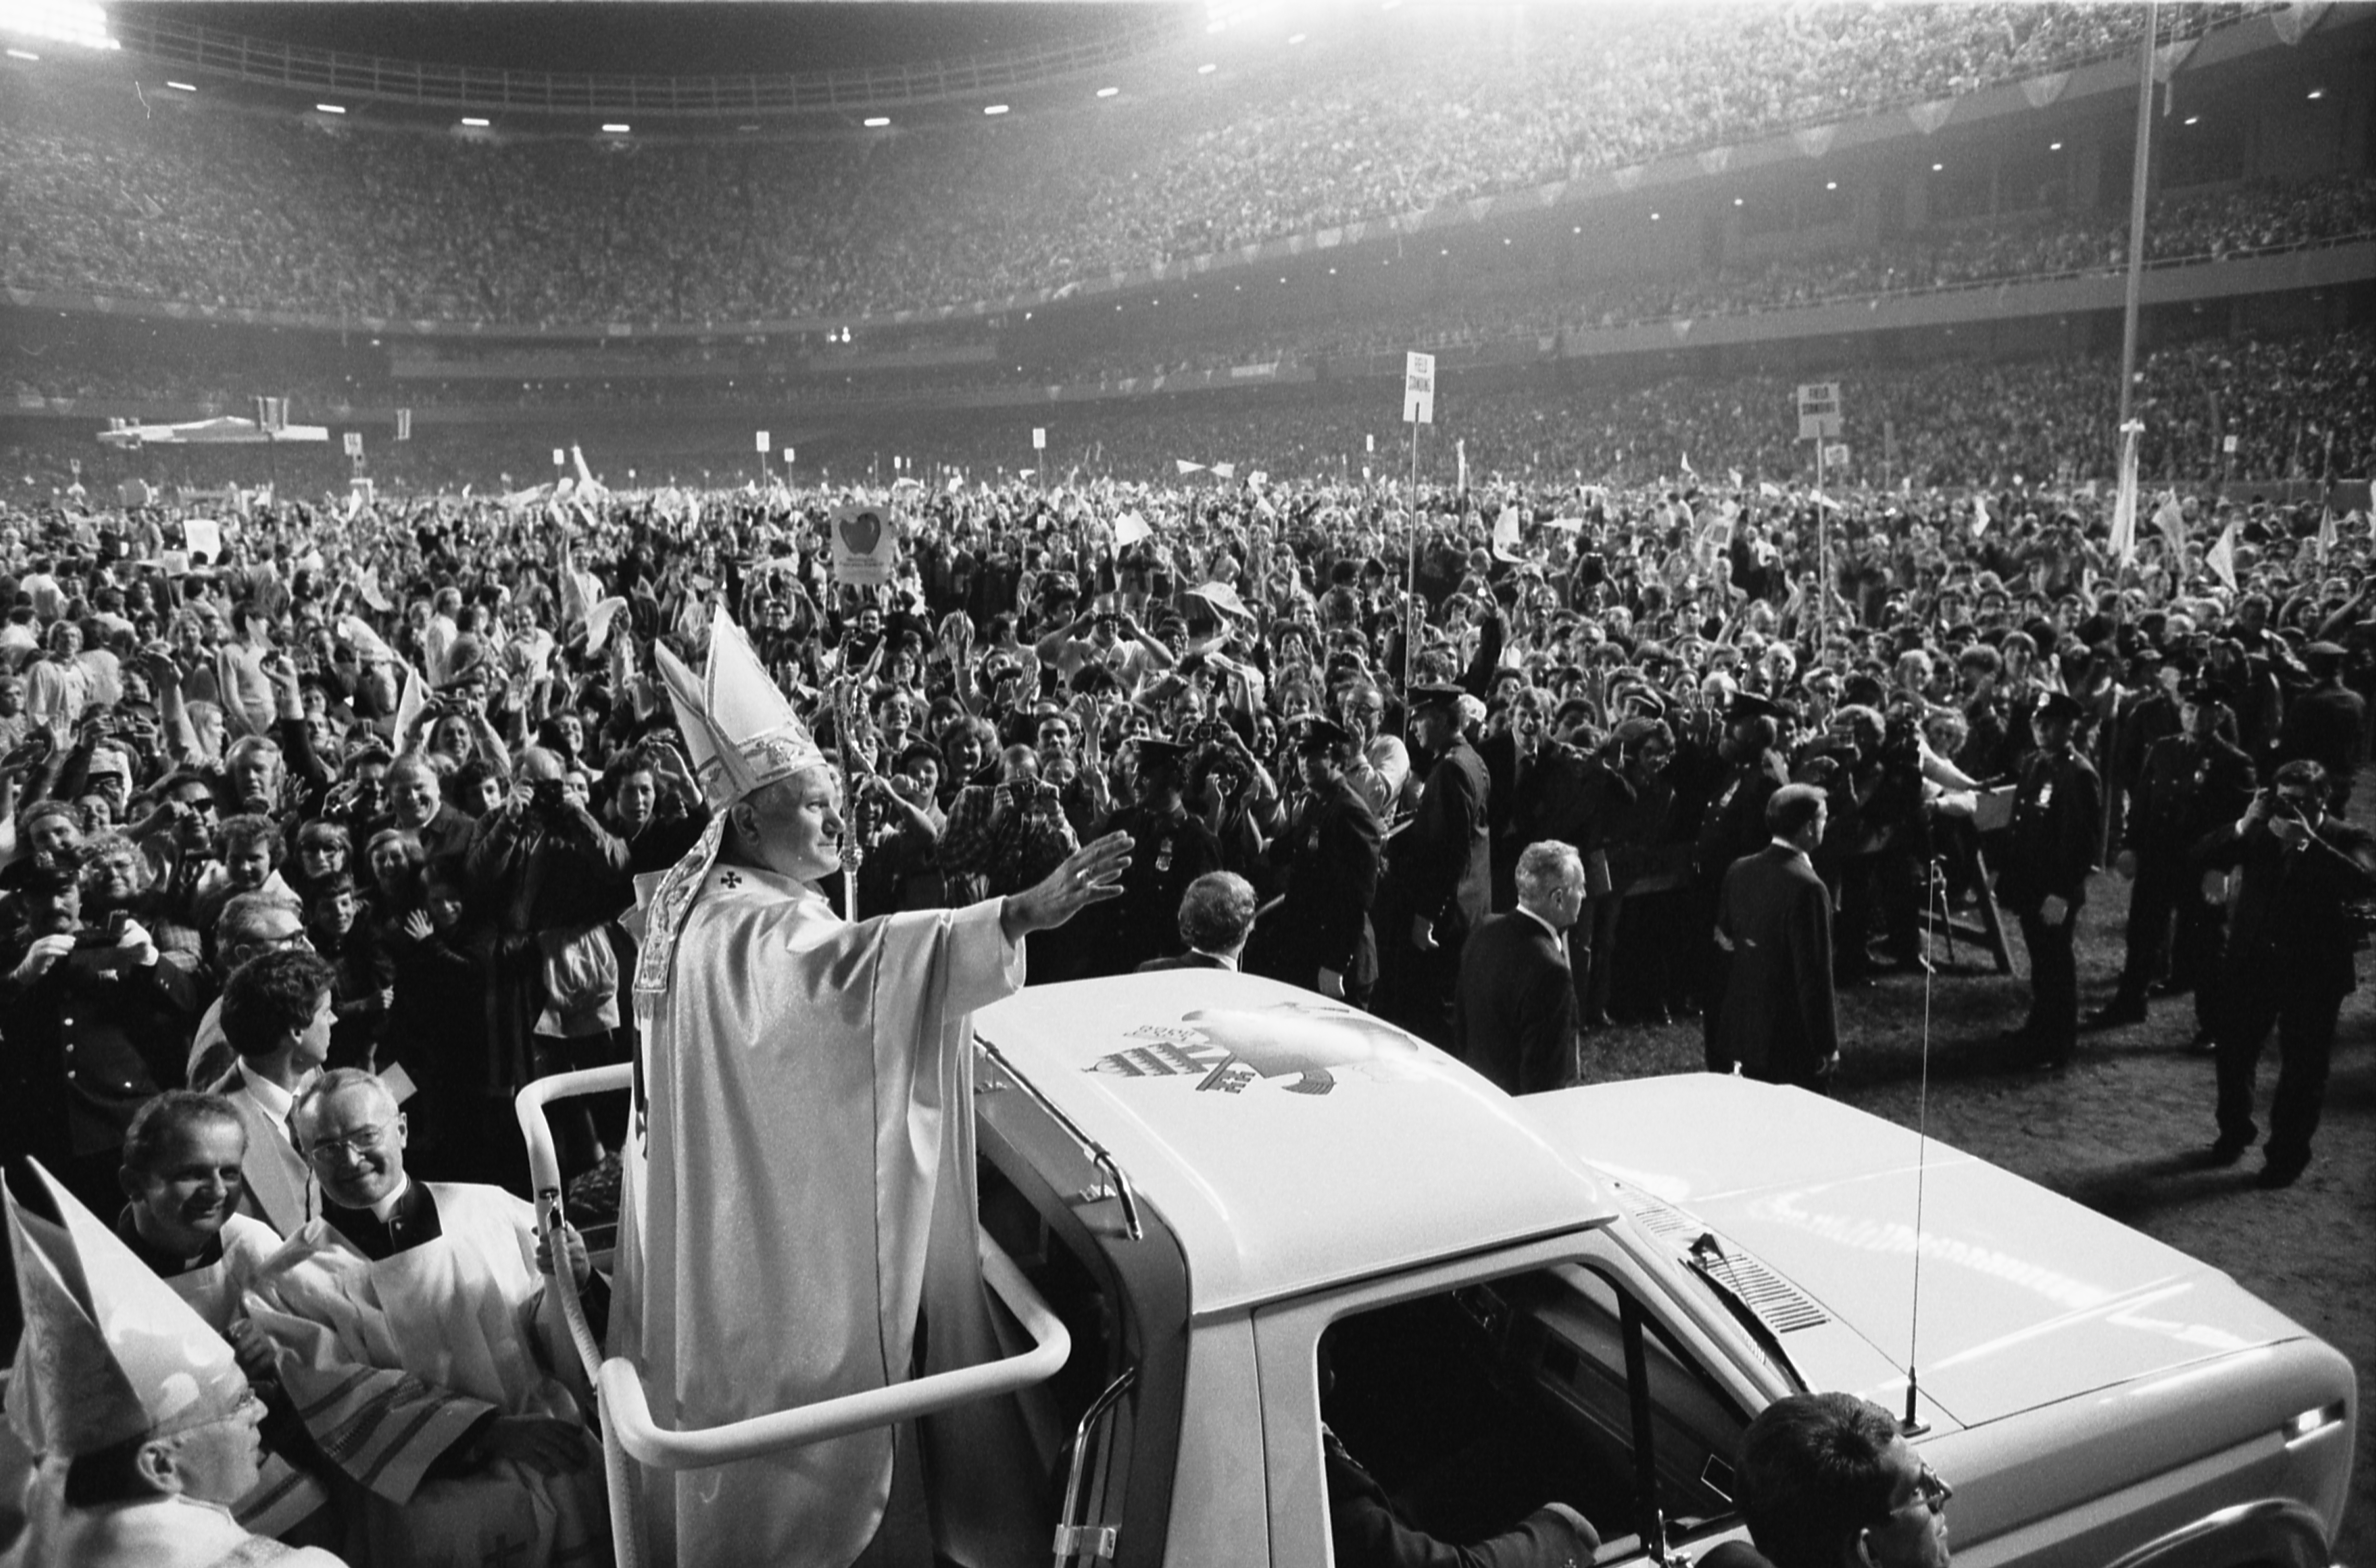 the life and work of pope john paul ii At the conclusion, pope john paul ii gives the best summary of this encyclical: in these present reflections devoted to human work we have tried to emphasize everything that seemed essential to it, since it is through man's labor that not only 'the fruits of our activity' but also 'human dignity, brotherhood and freedom' must increase on earth.